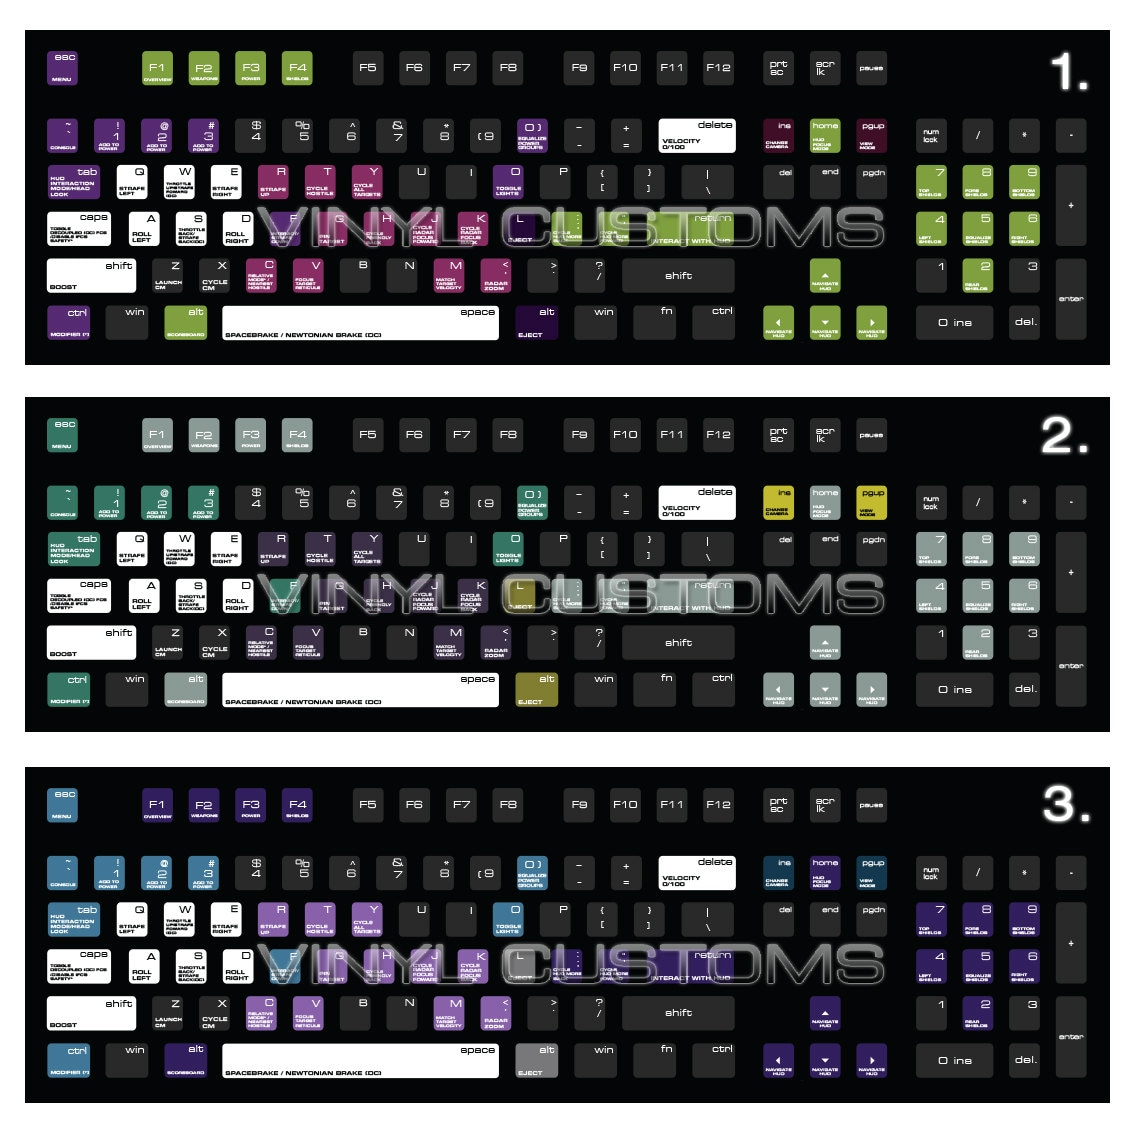 Adobe Photoshop CS6 Keyboard Shortcuts Noble Desktop